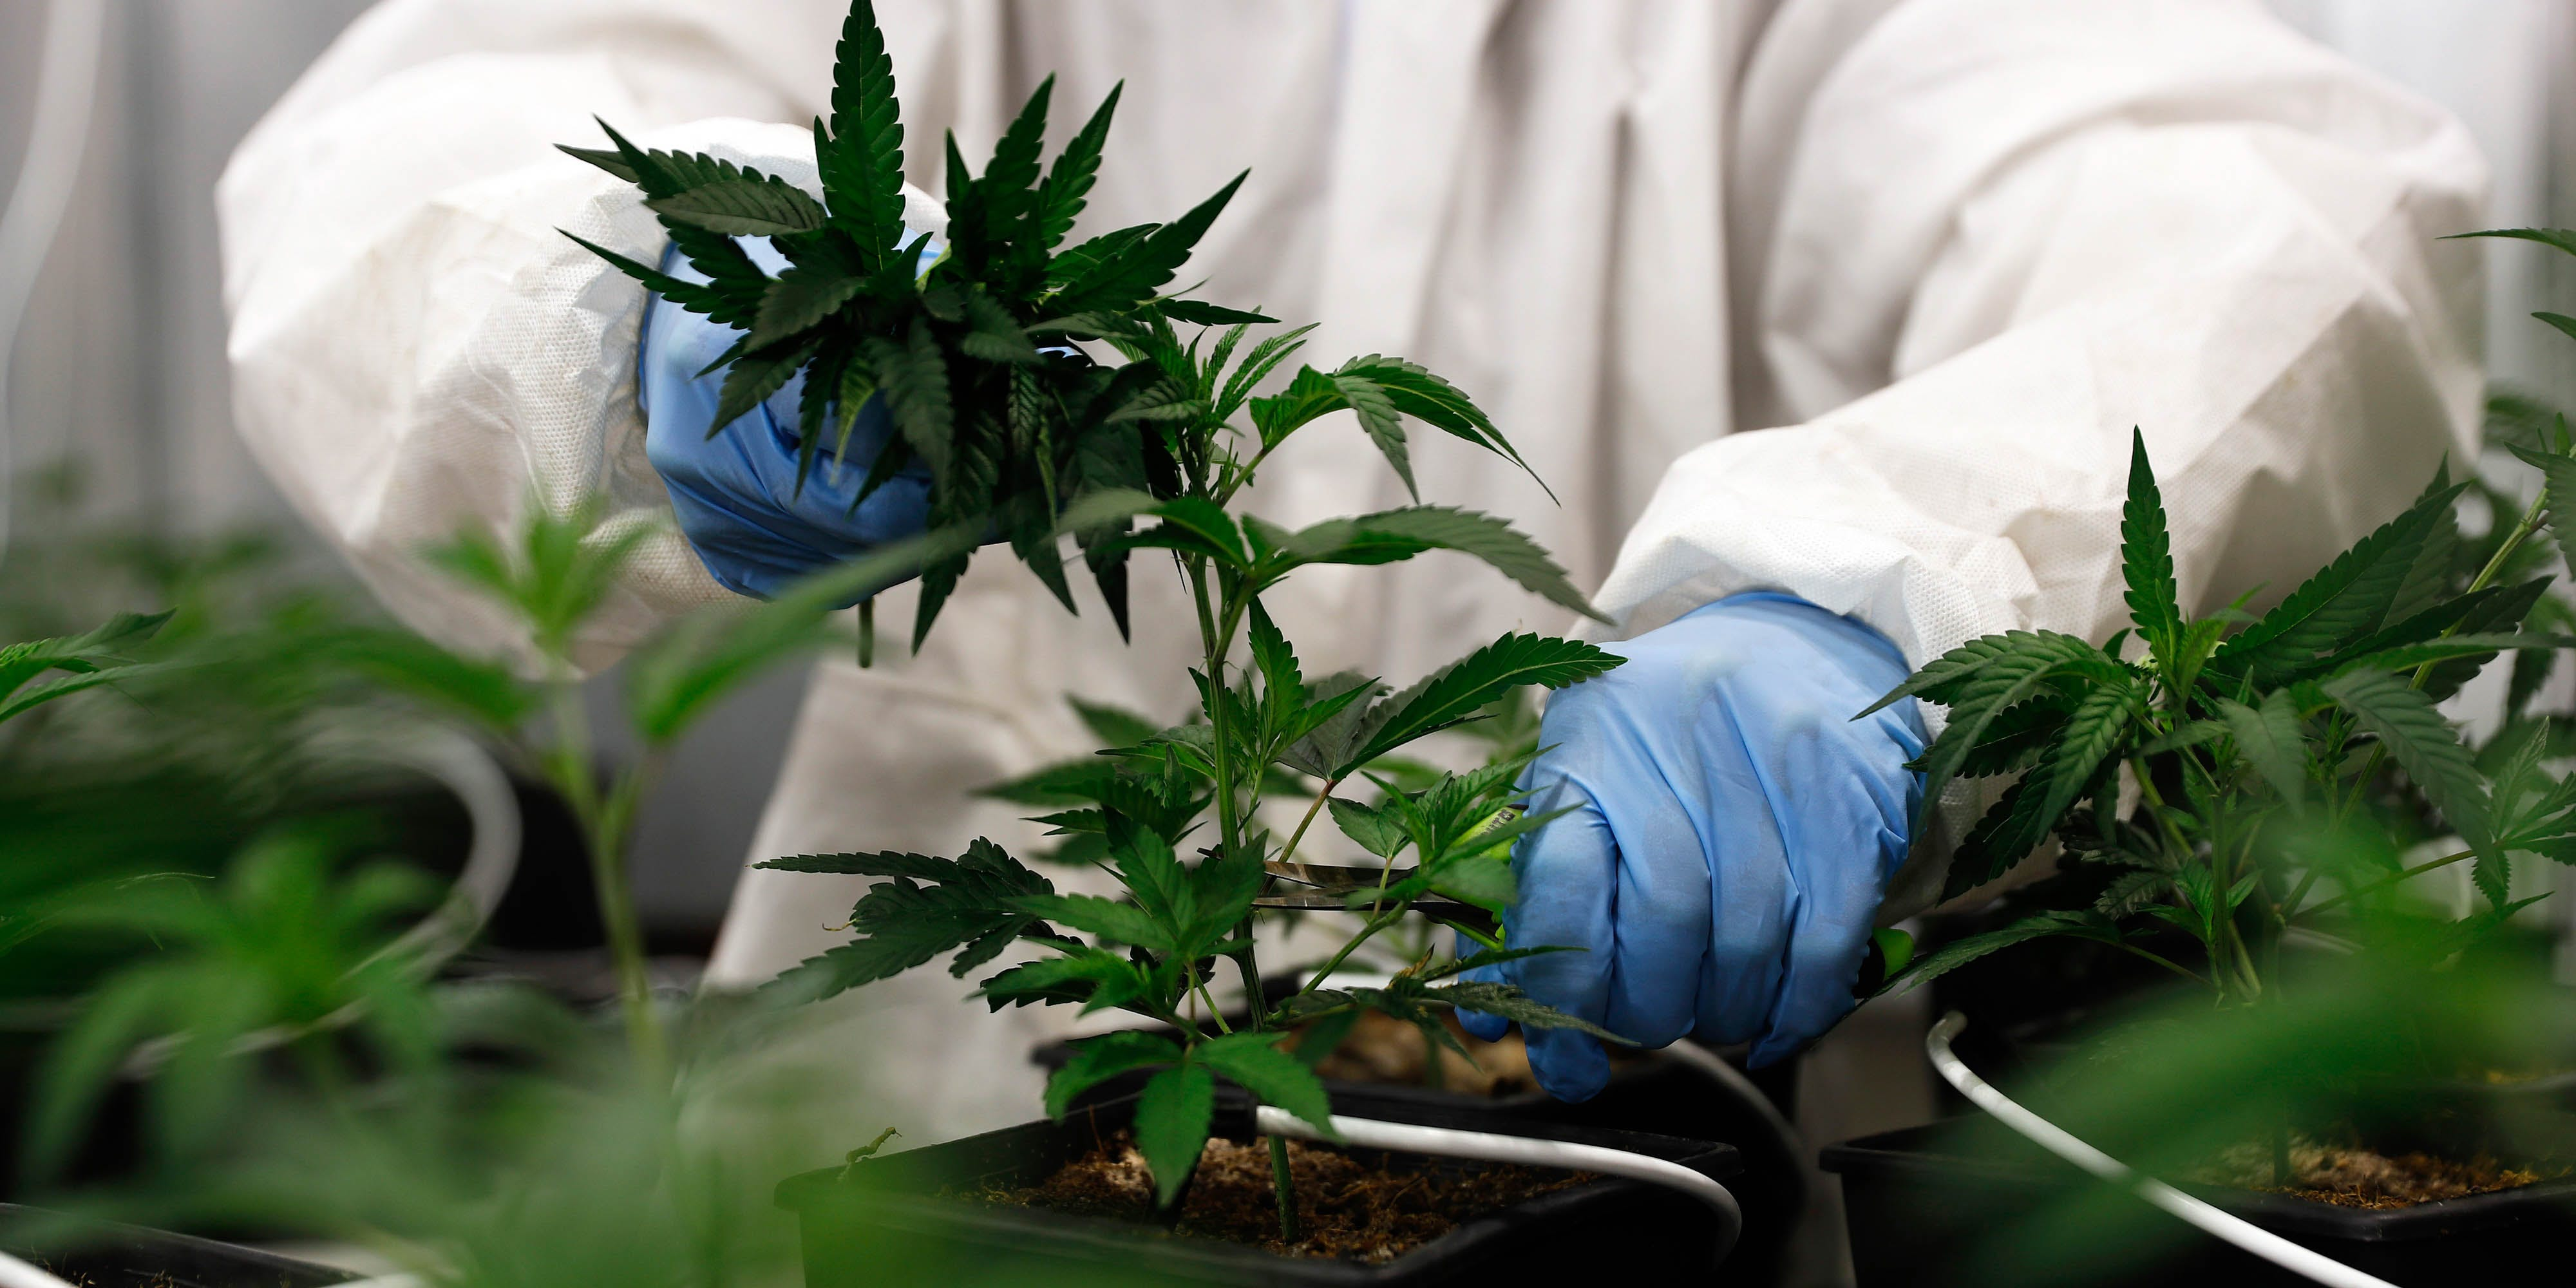 An employee takes cuttings from a cannabis mother plant inside a greenhouse facility. New research out of Australia finds that CBD might not be the only cannabinoid fighting epilepsy.